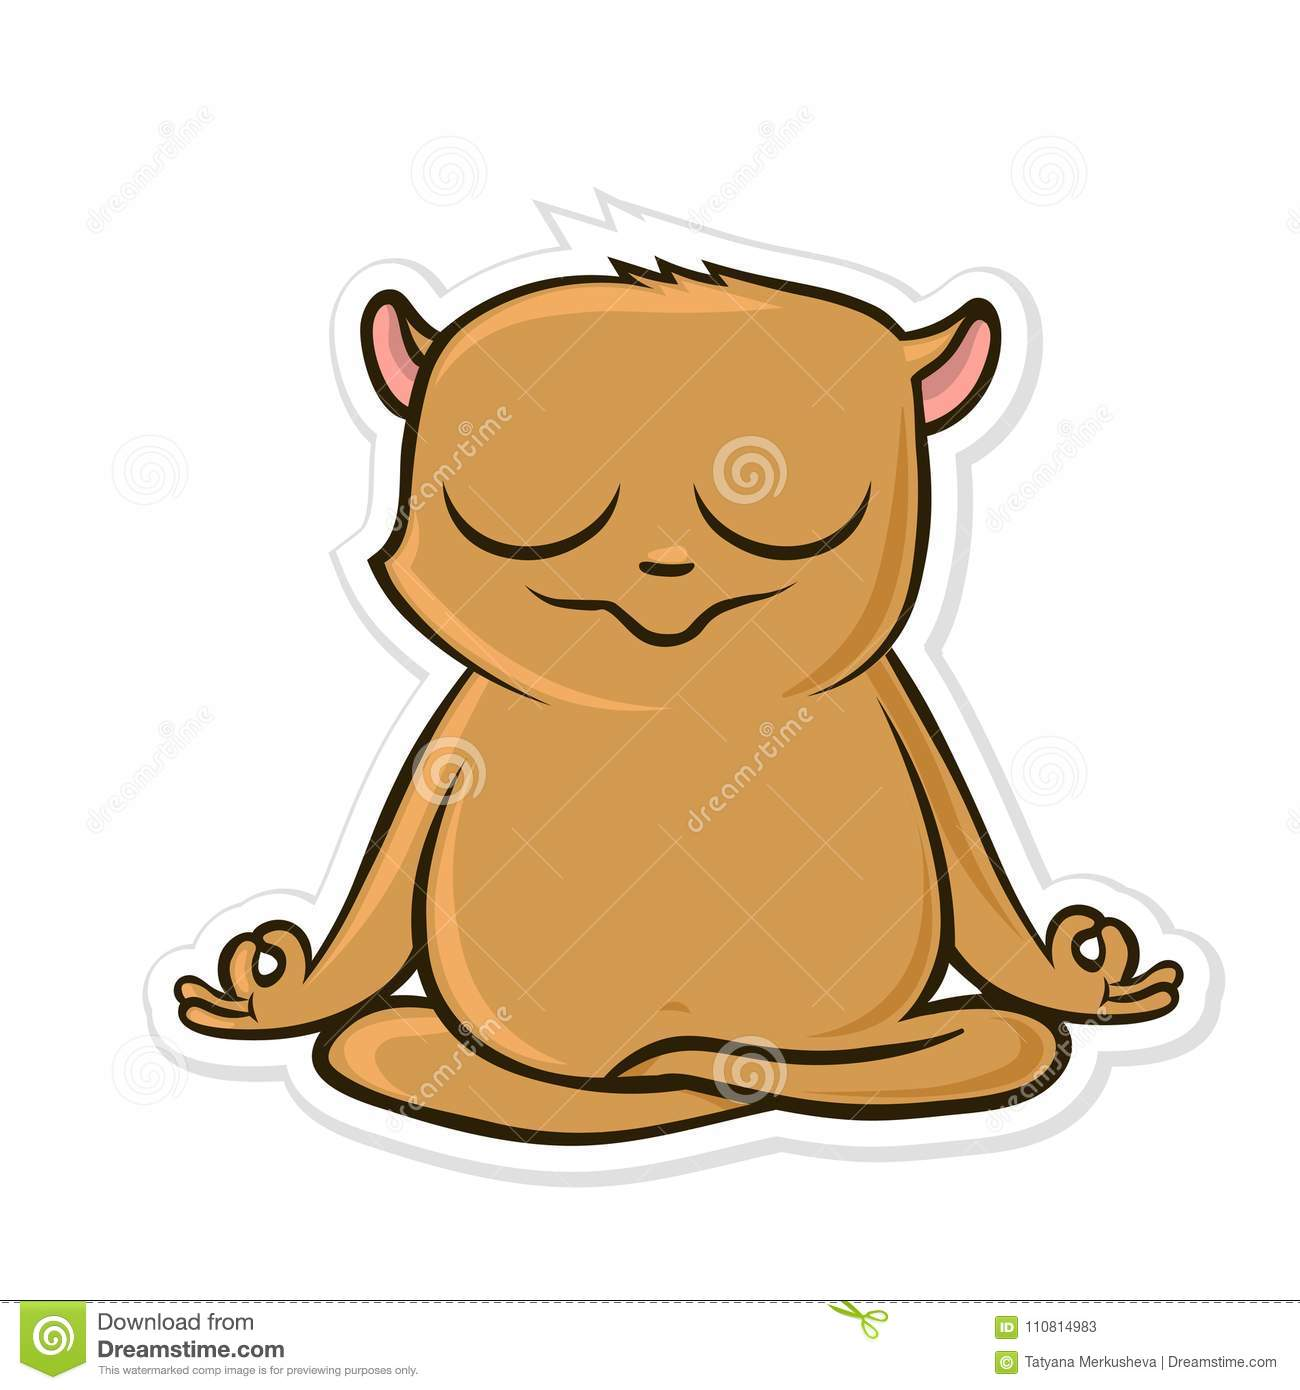 Sticker for messenger with funny animal. Hamster practicing yoga, sitting in Lotus position. Vector illustration